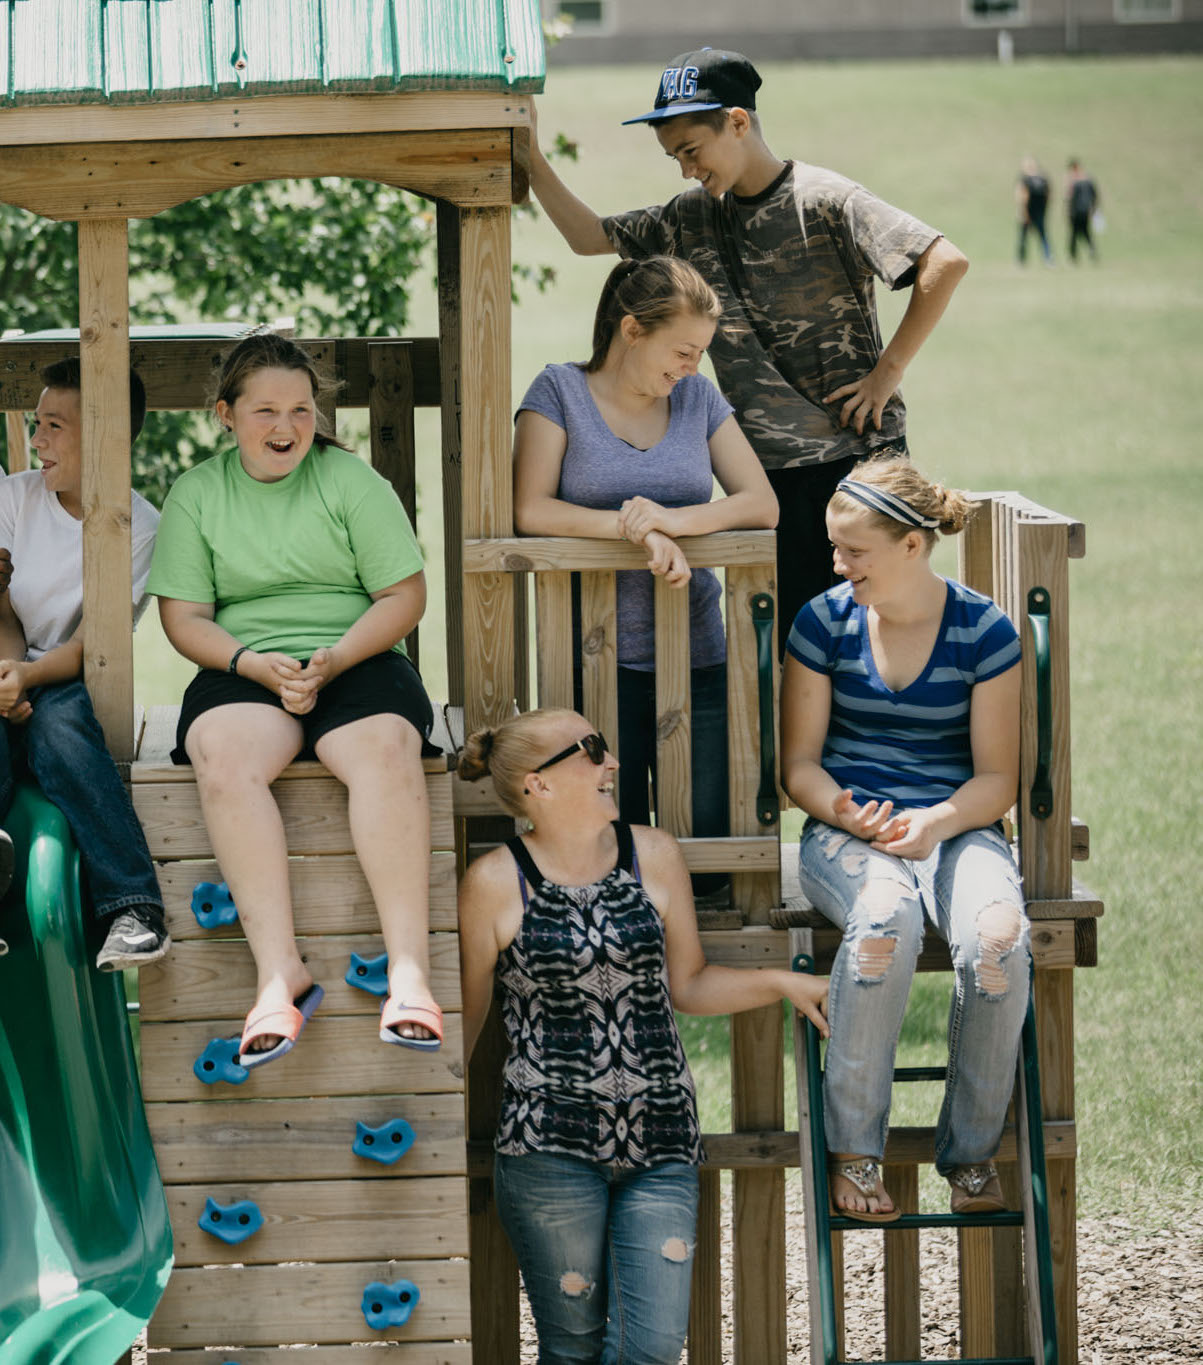 A foster care family hang out together at a playground